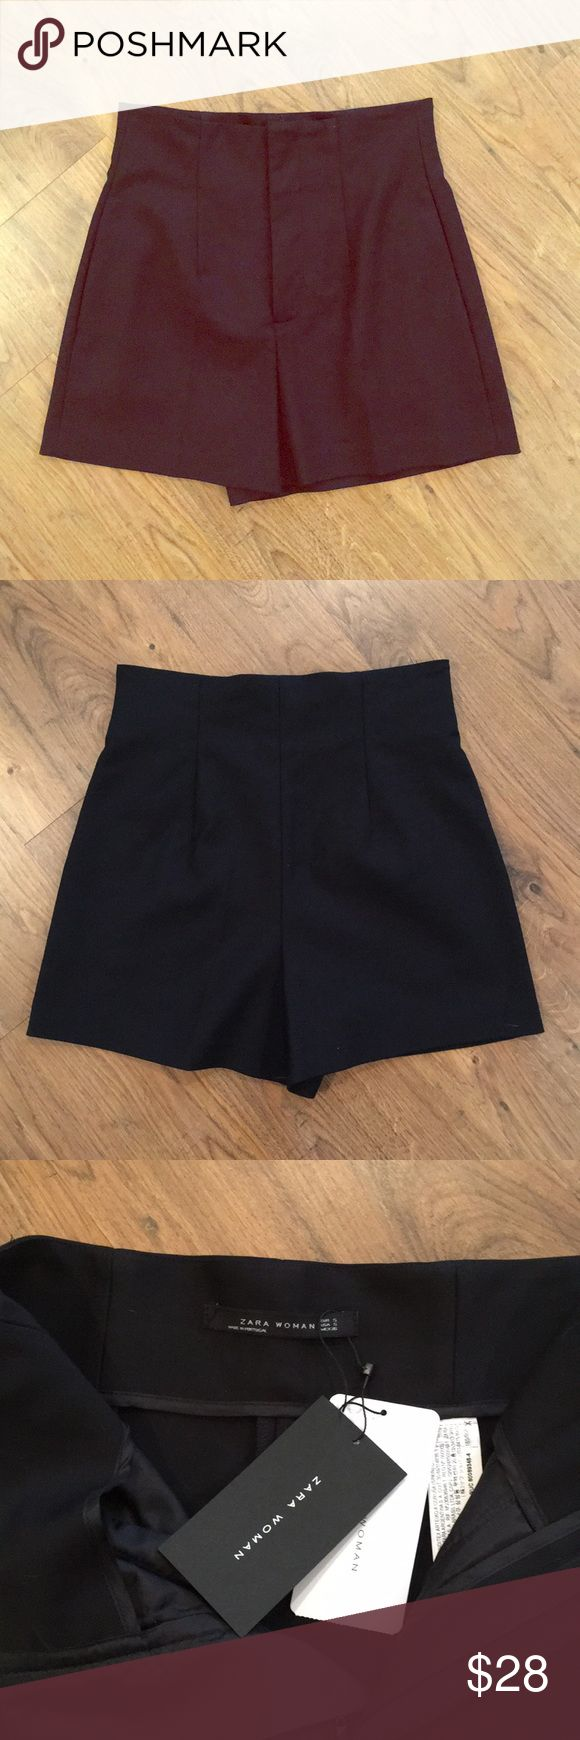 Classy black high waisted Zara shorts NWT New with tags. Black high waisted Zara shorts. Classic piece. Chic. Can be dressed up or down. Make an offer! Zara Shorts